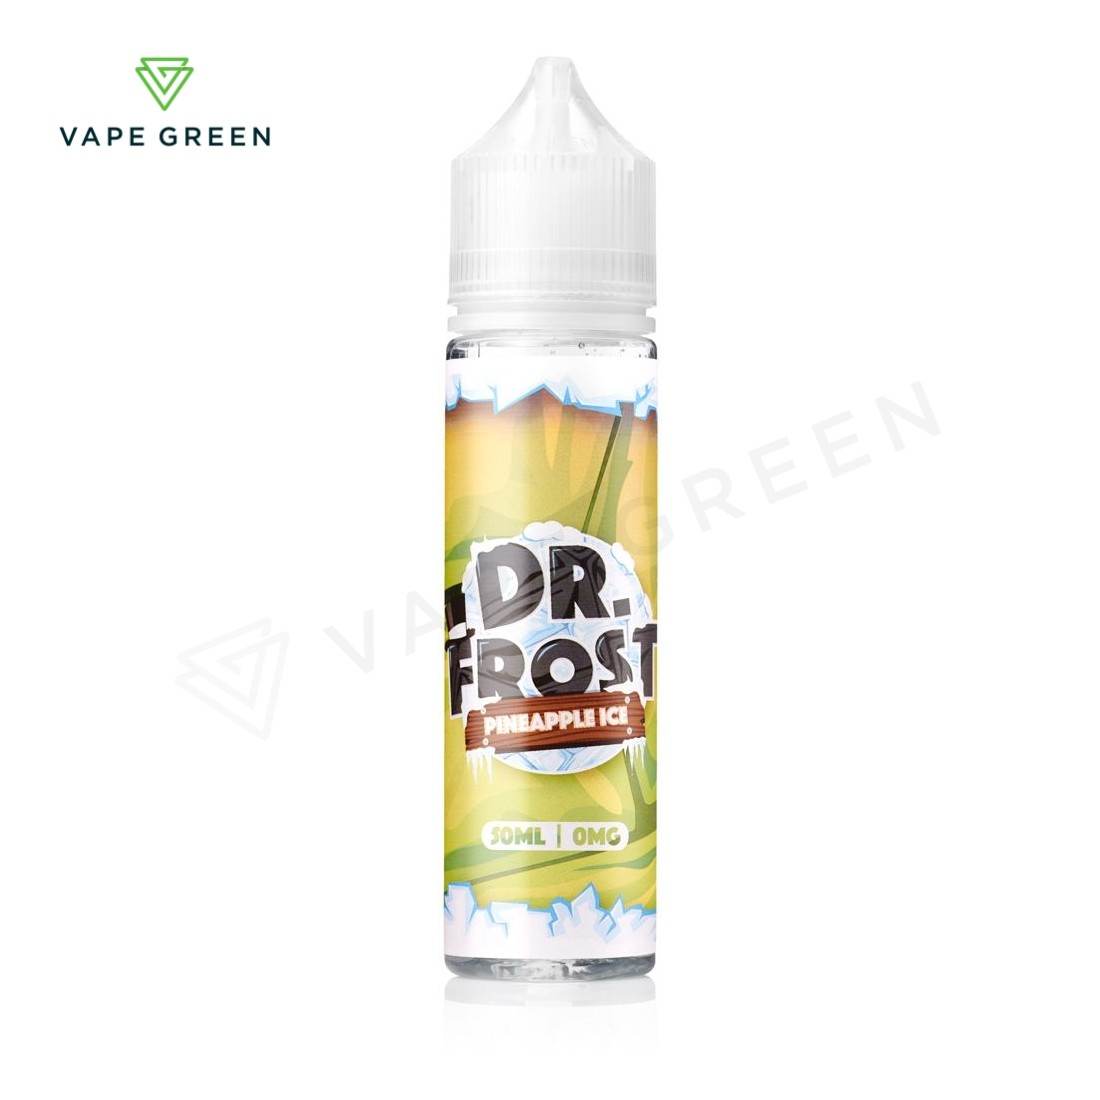 Pineapple Ice E-liquid by Dr Frost 50ml